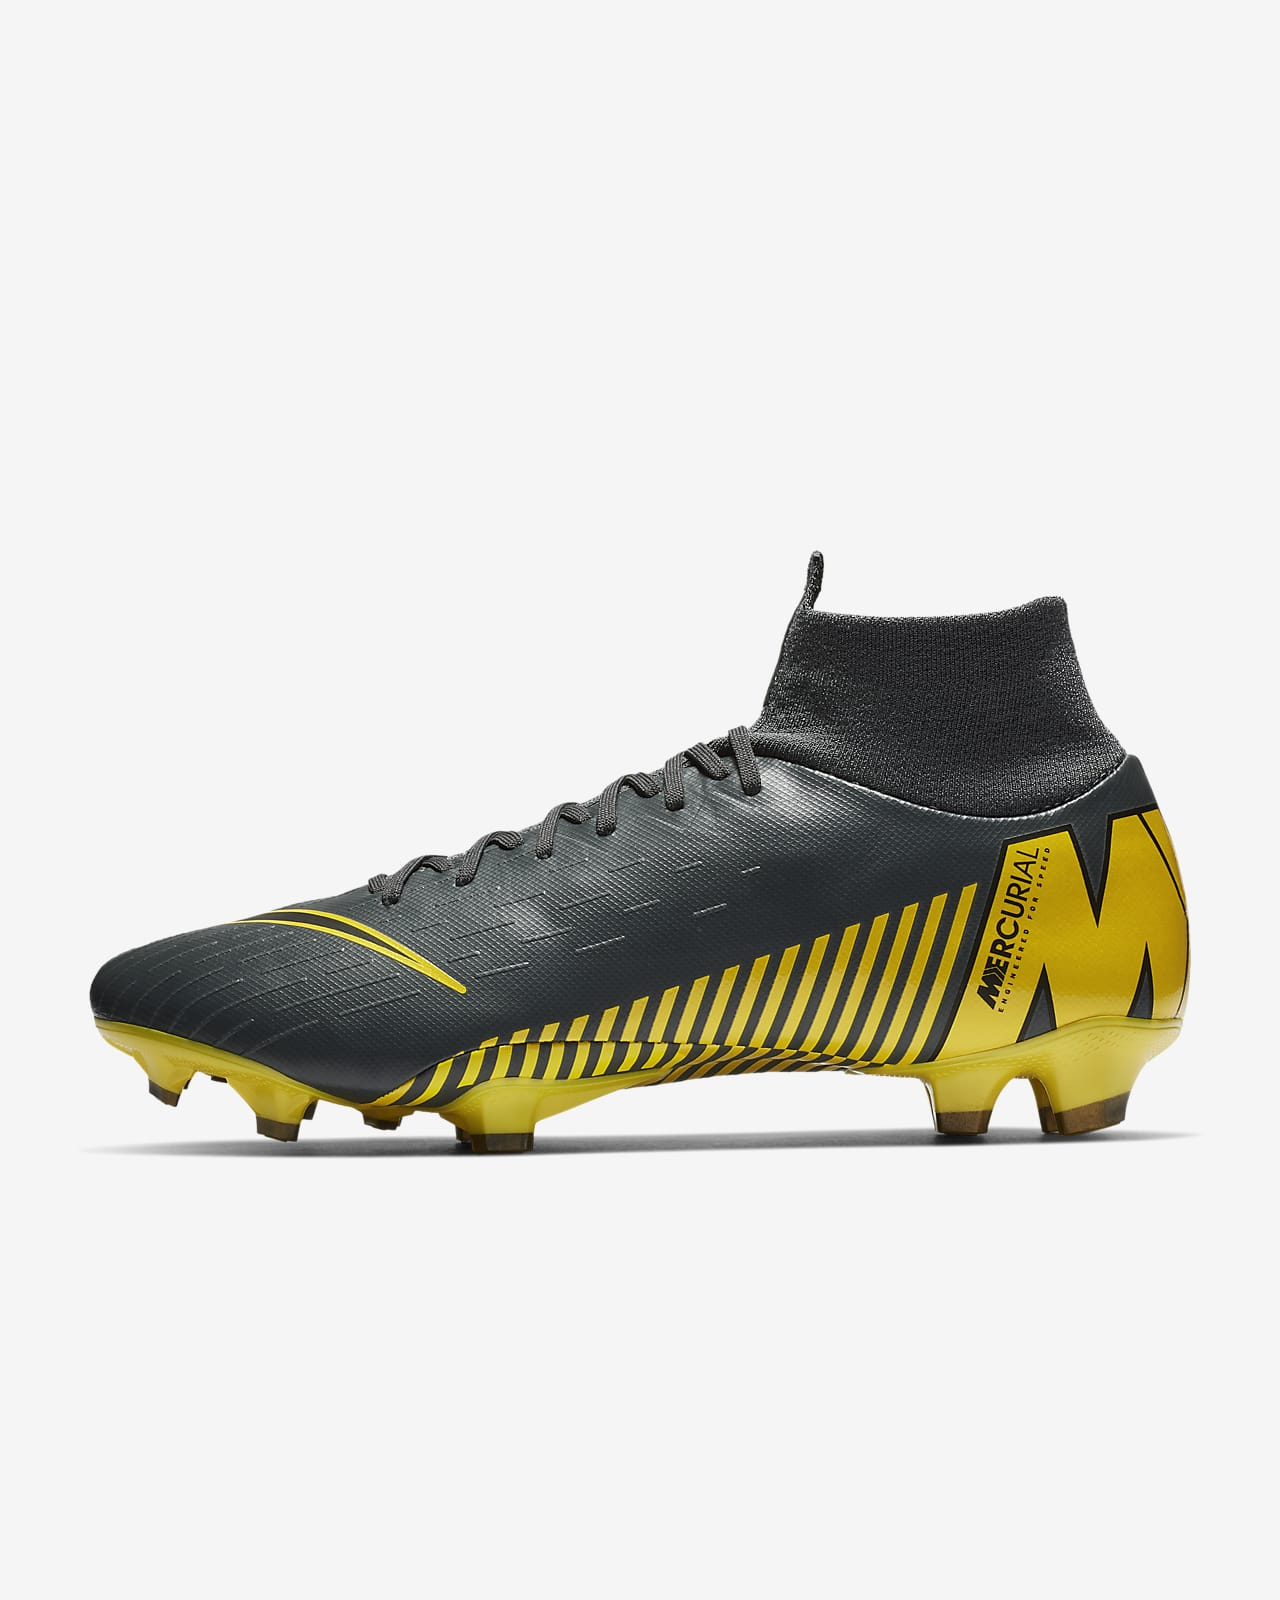 Nike Superfly 6 Pro FG Firm-Ground